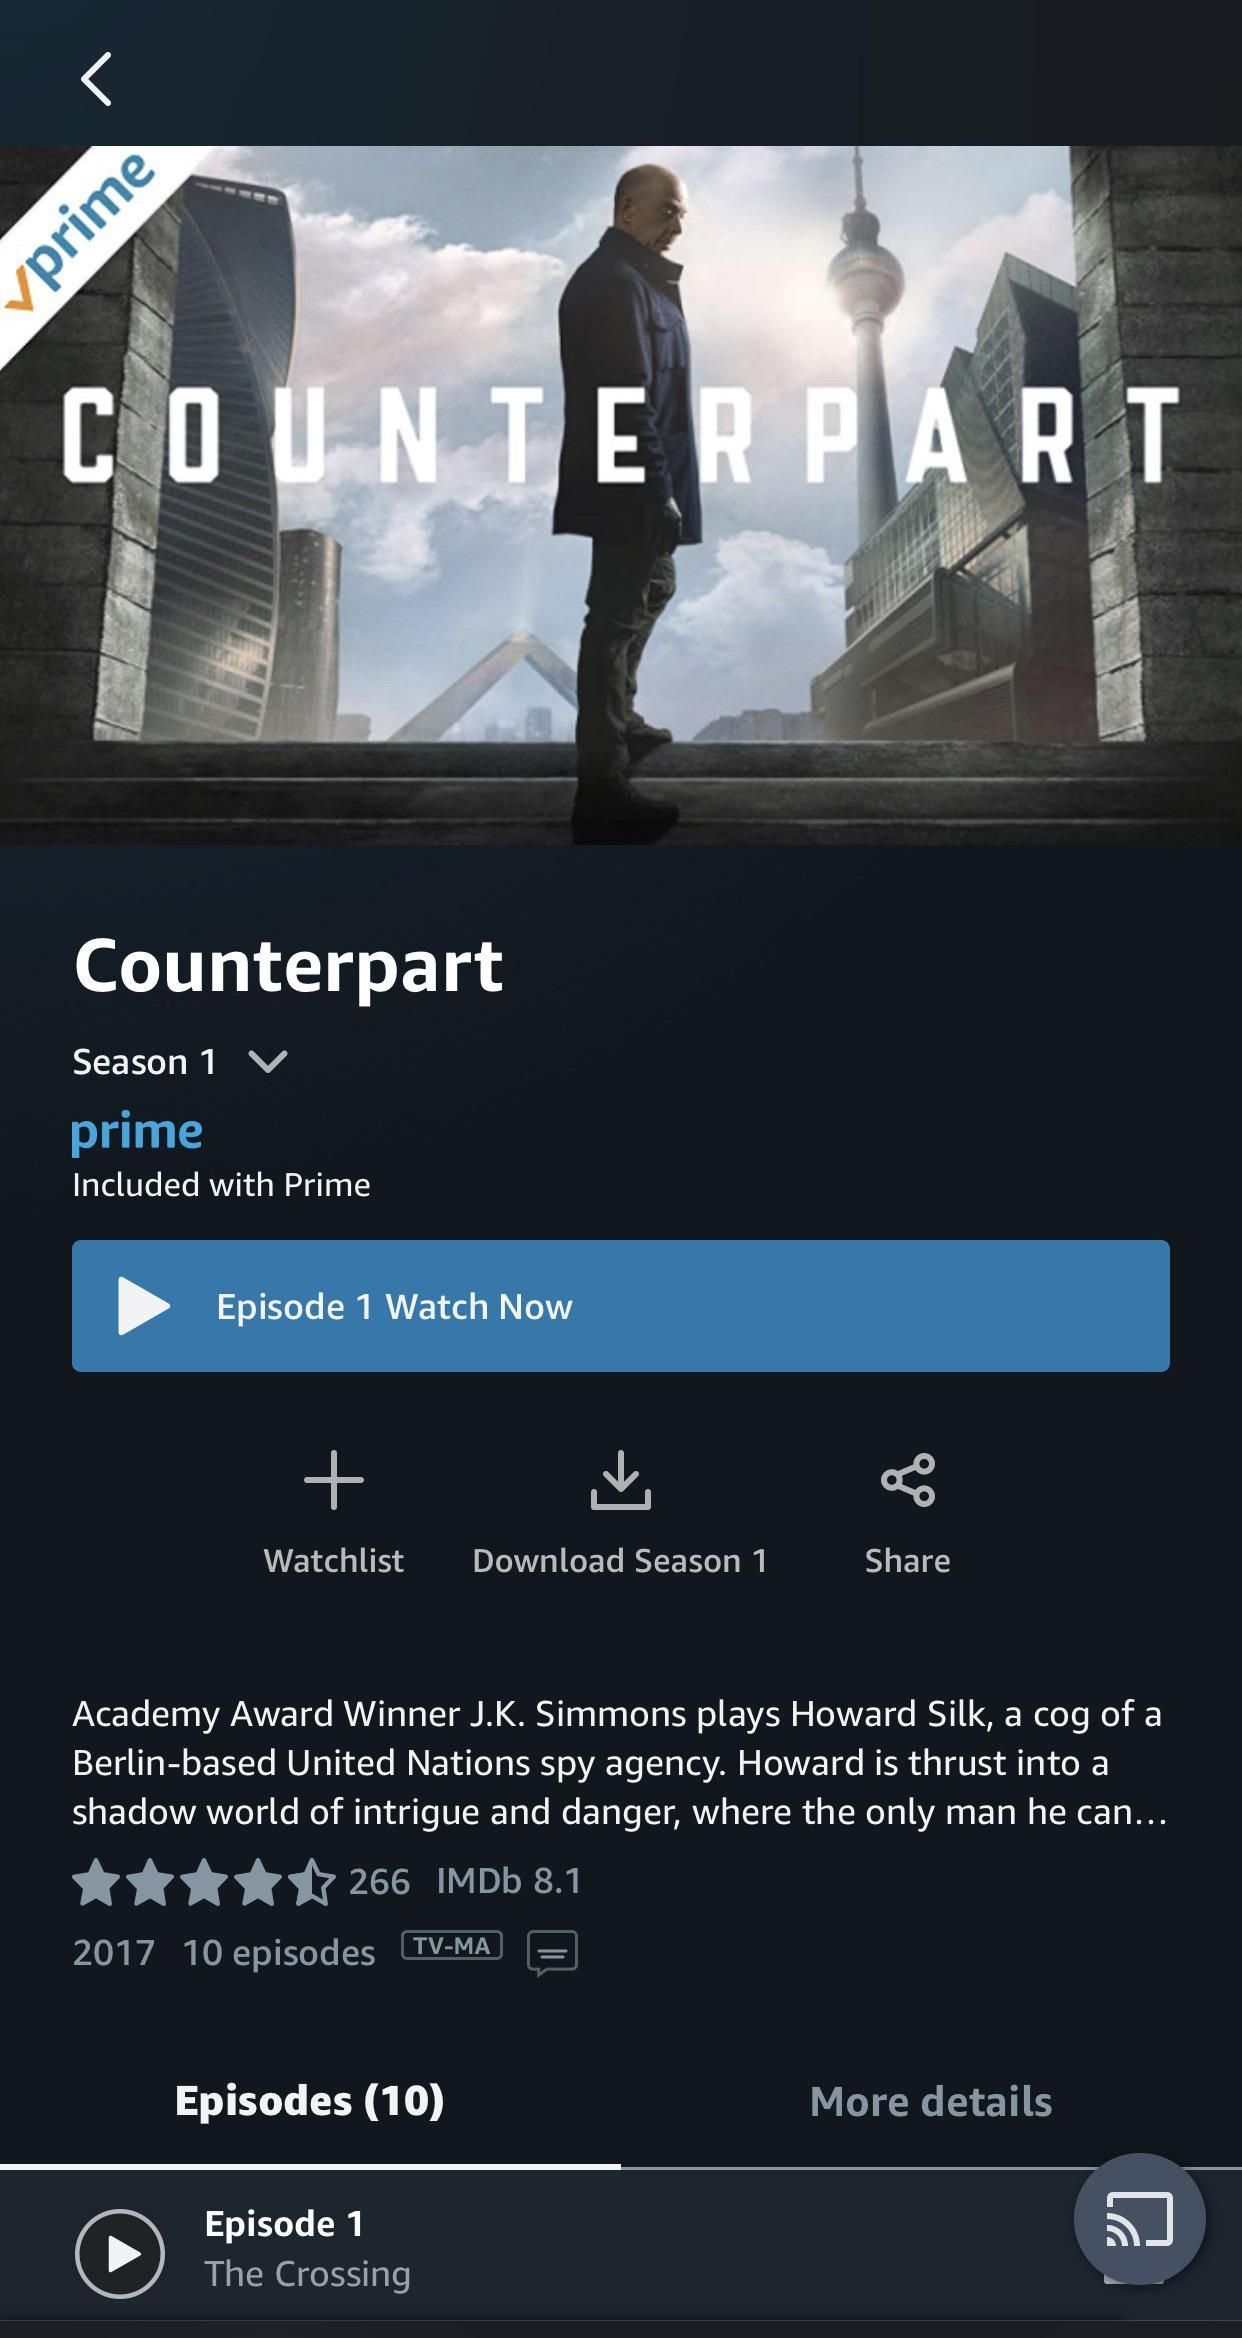 It was removed from starz but both seasons of counterpart